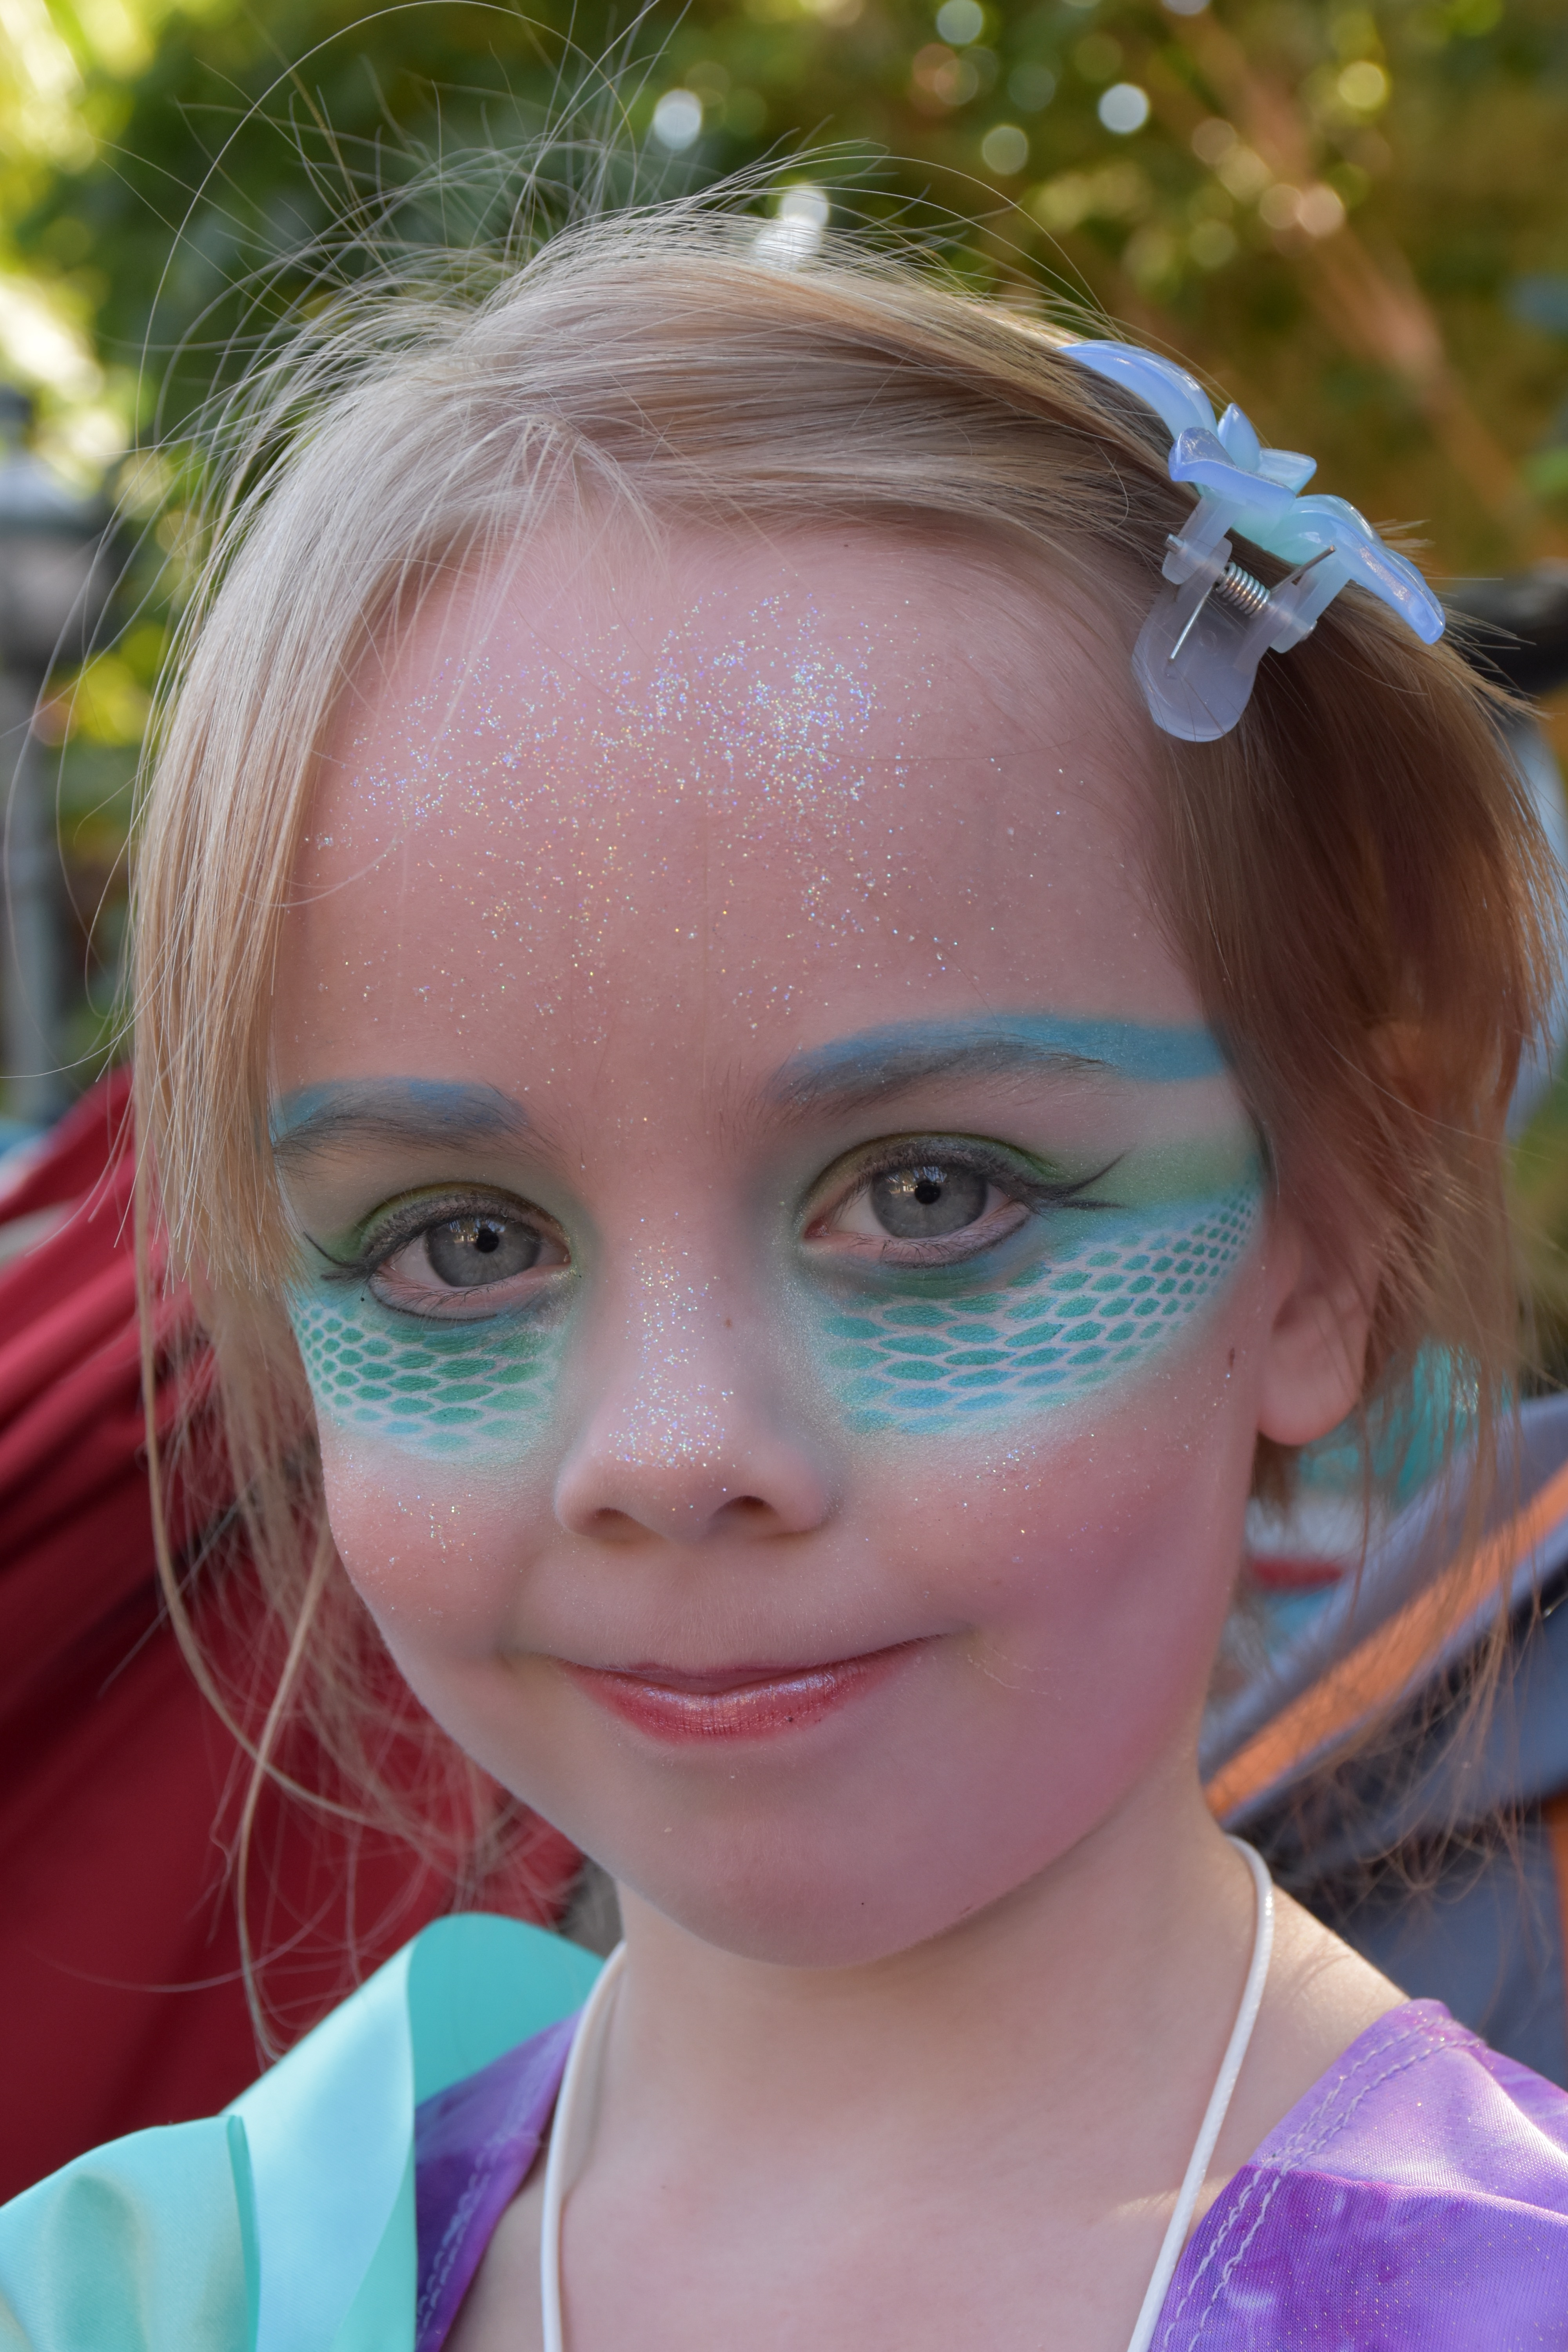 The Pirates League Mermaid Makeover At Walt Disney World Mom Approved Review The Mom Approved Blog